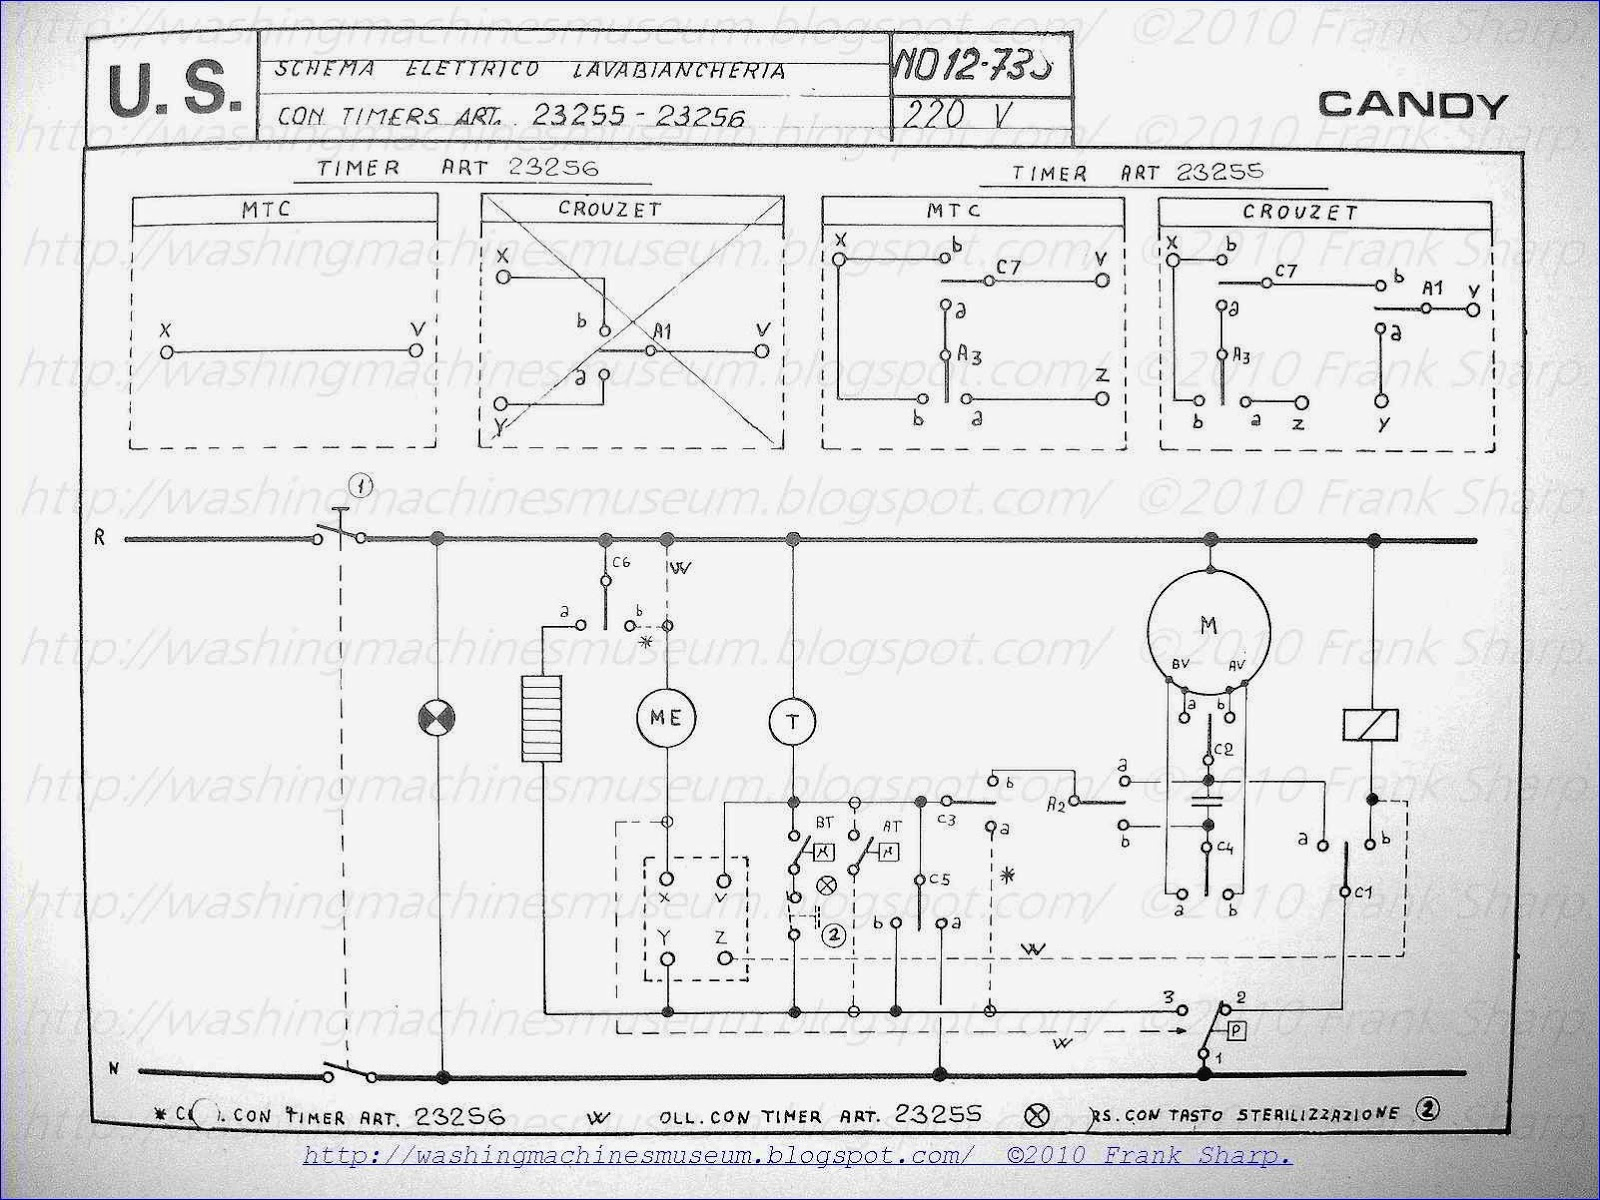 Washer    Rama Museum  CANDY WASHING MACHINE WITH TIMER 23255  23256 SCHEMATIC    DIAGRAM